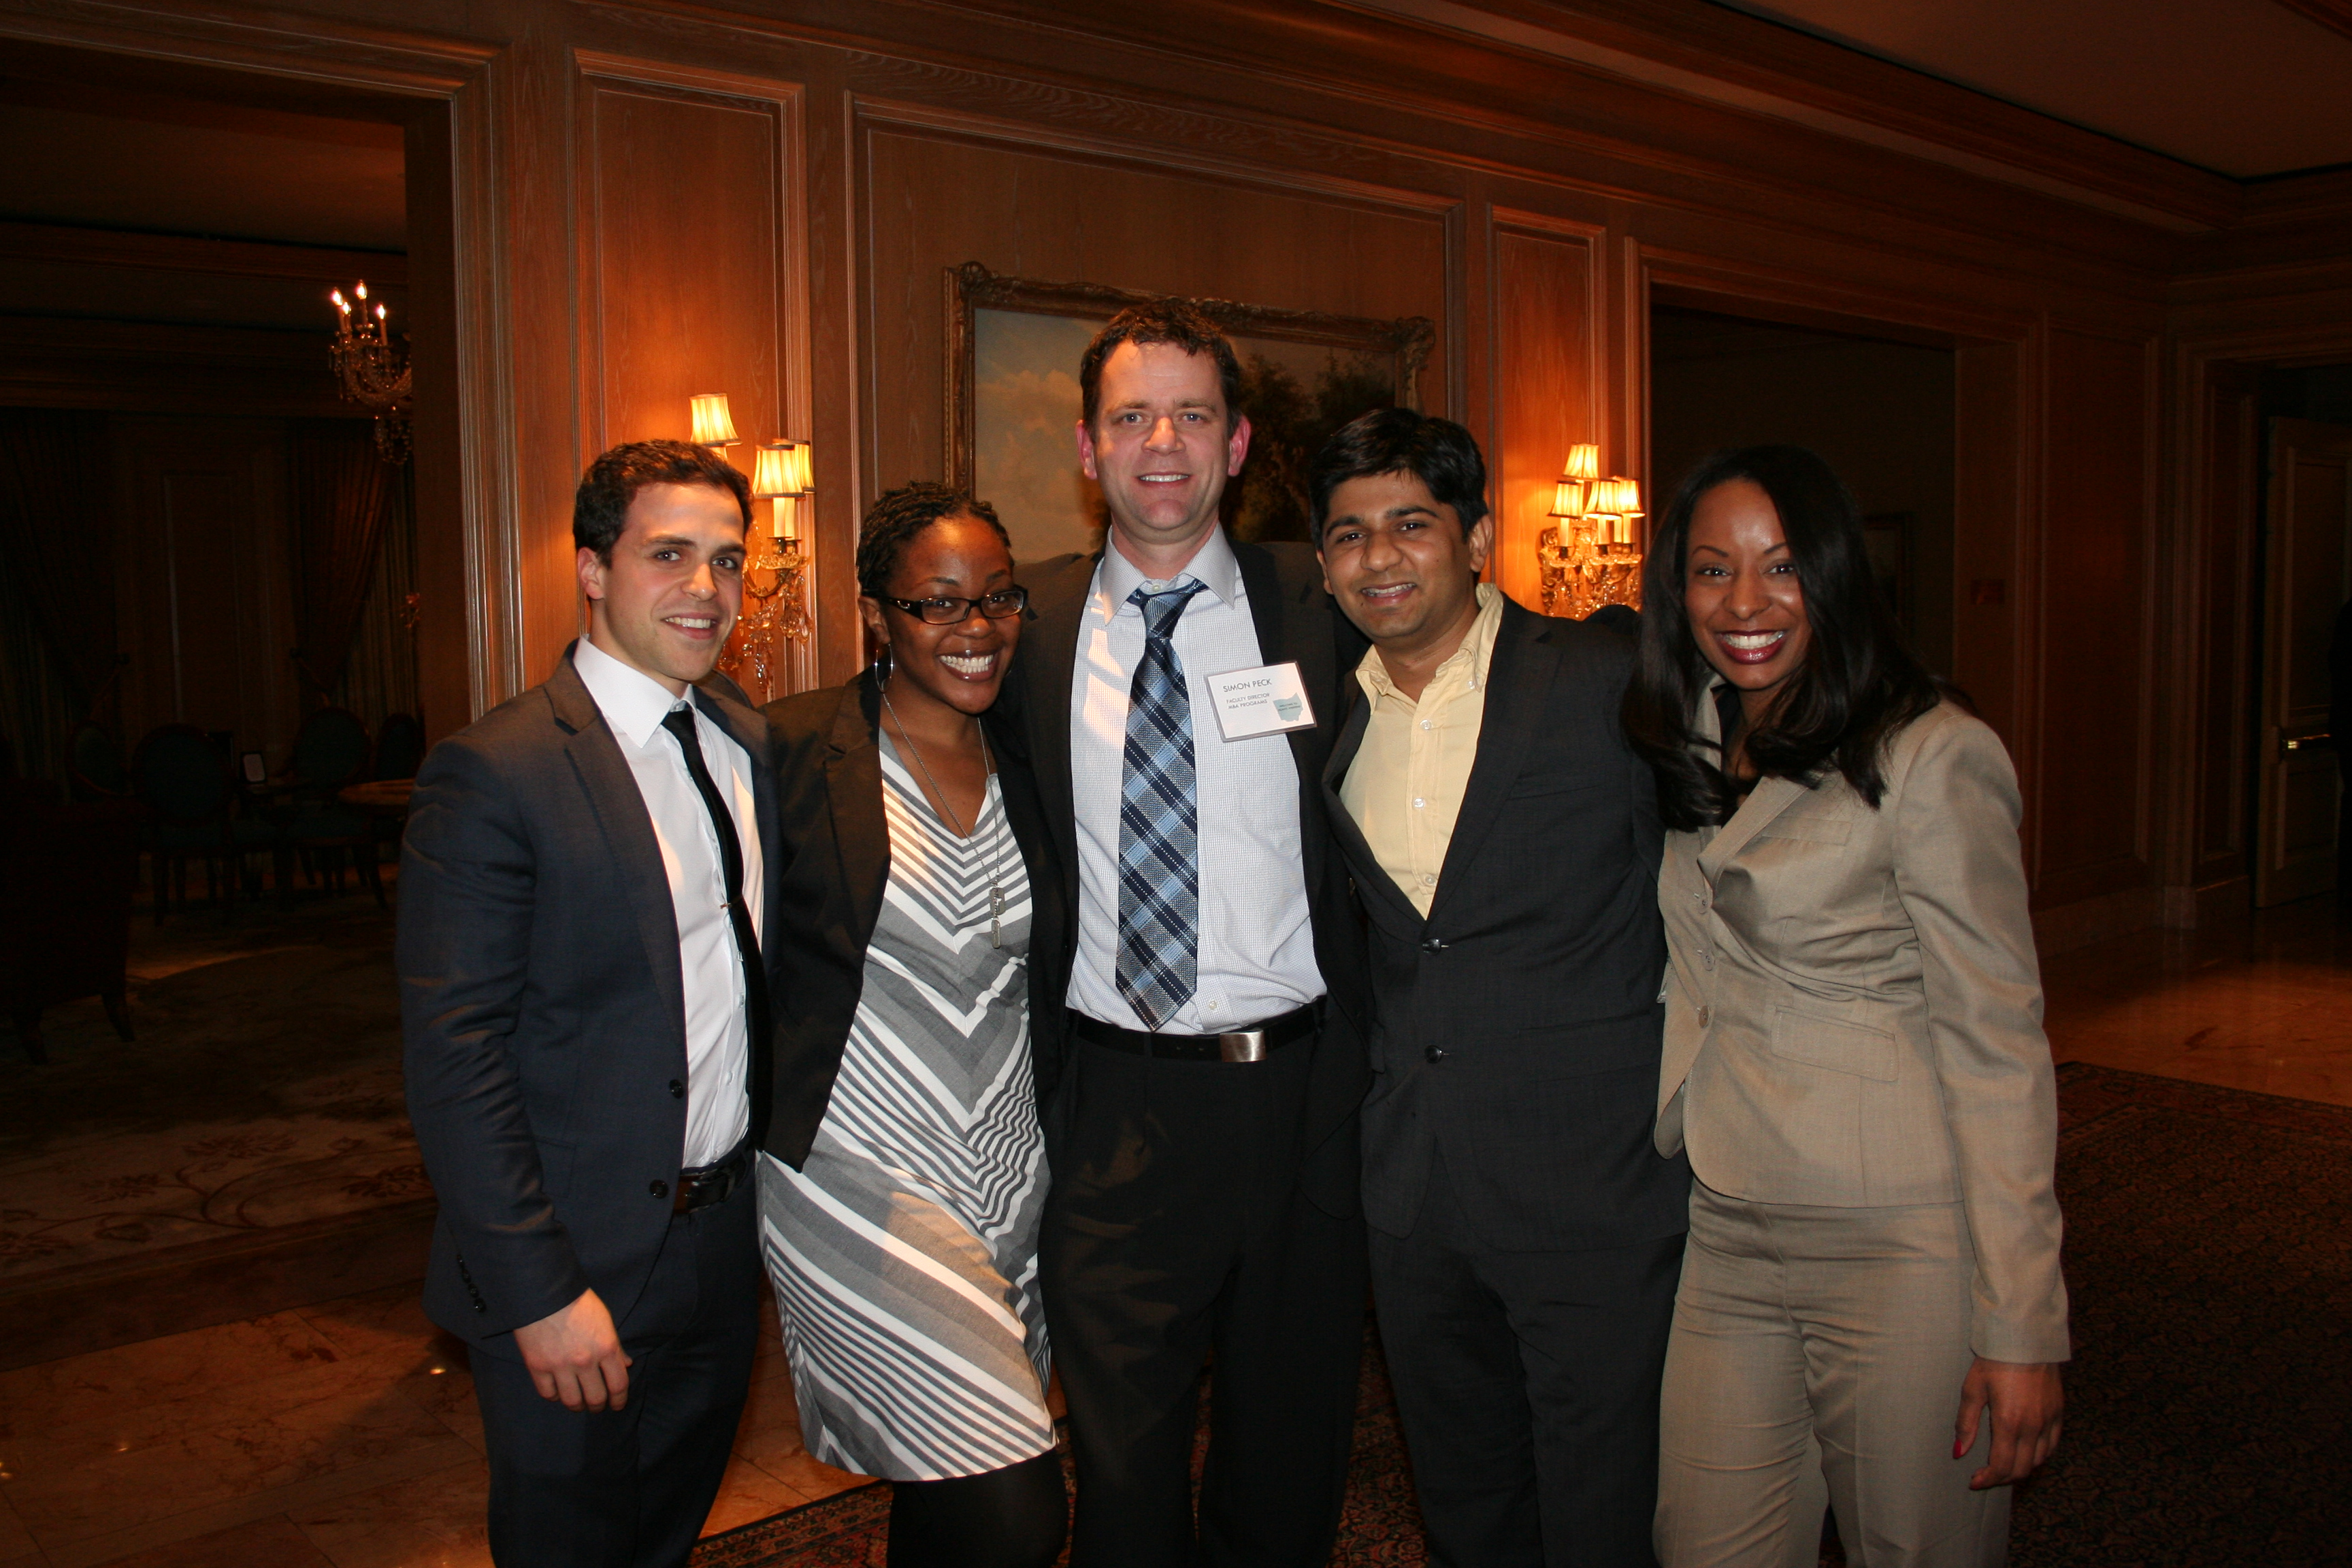 Simon Peck (center) with MBA students